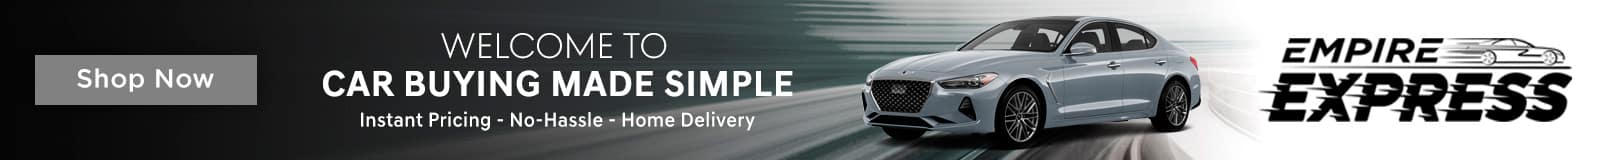 Express Store, Welcome to Car Buying Made Simple, Shop All Models